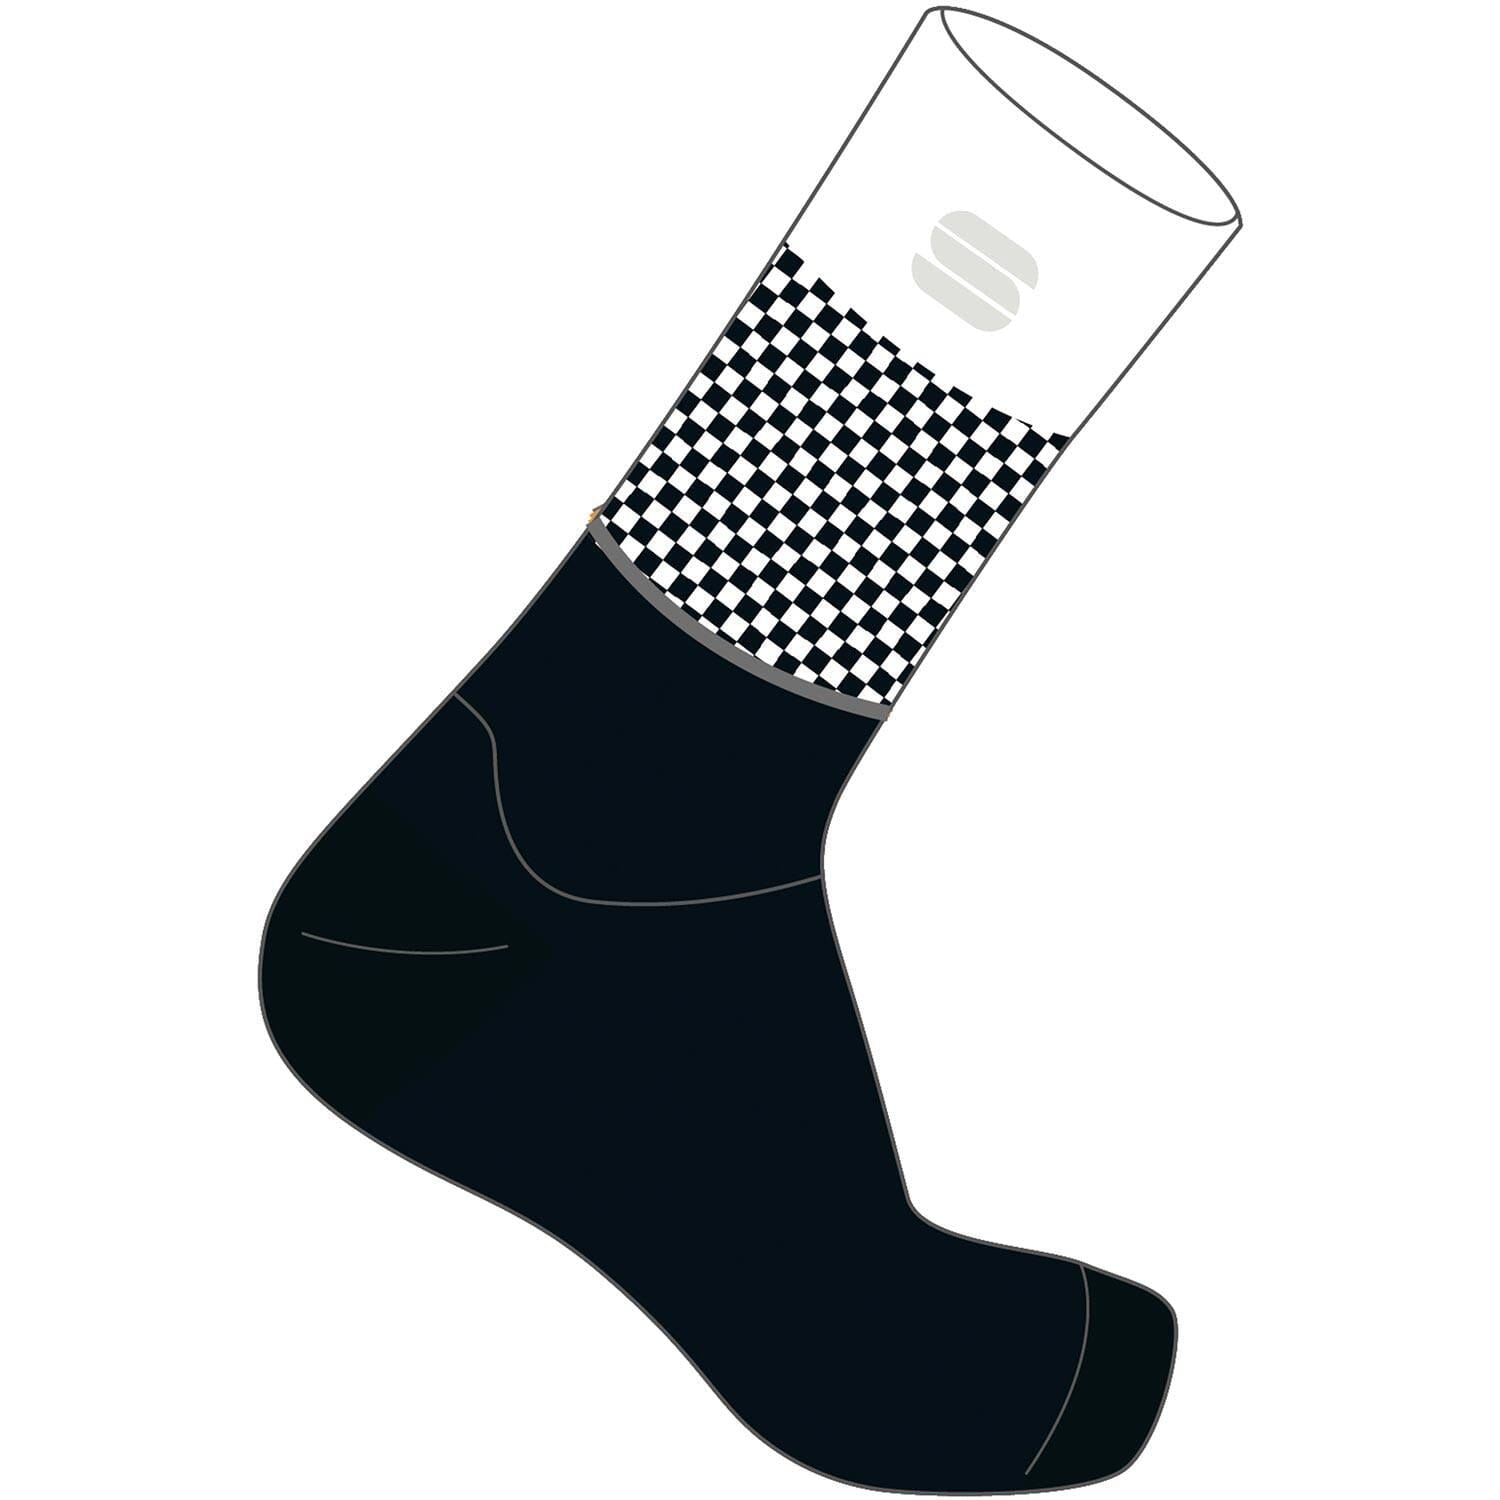 Sportful-Sportful Light Socks-Black-S-SF2104100212-saddleback-elite-performance-cycling